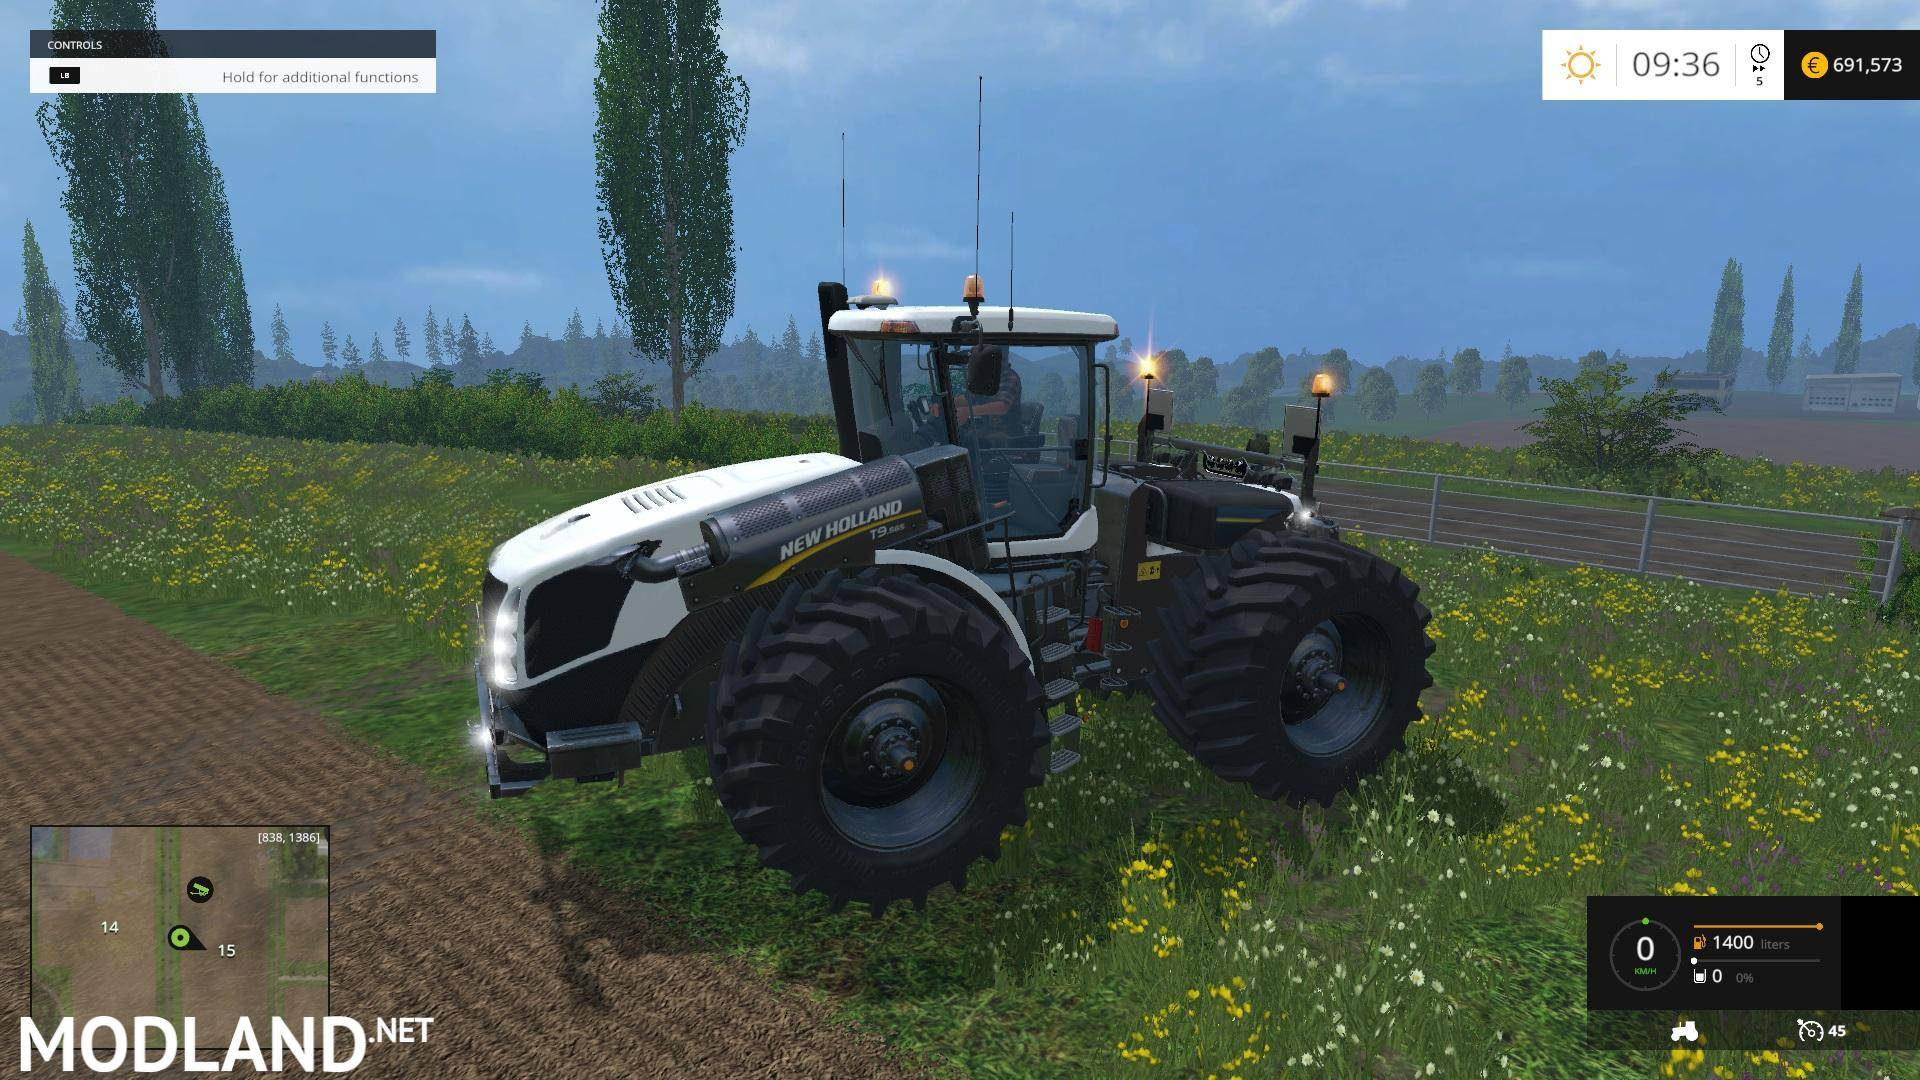 Tractor Simulator 2 : New holland t double pack mod for farming simulator